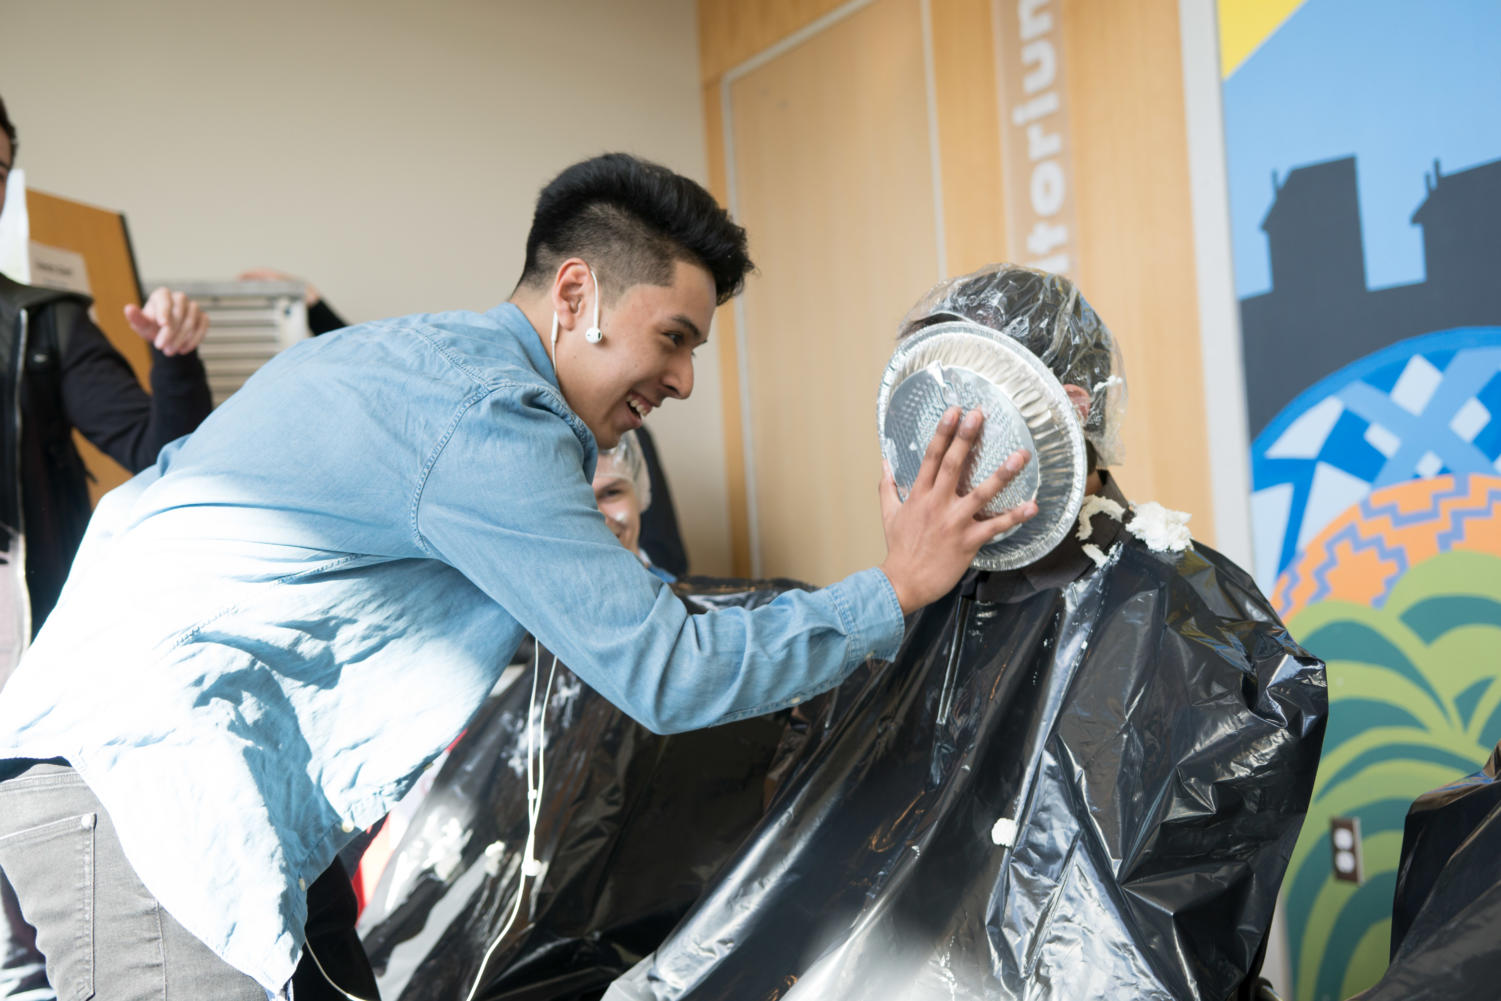 Junior Israel Ortiz Jr. lets science teacher Greg Kowalke have it during Pie A Teacher Day on March 14. This was the third year for the event where students got a chance to get revenge on teachers. This year, students were added to the panel to get pied.